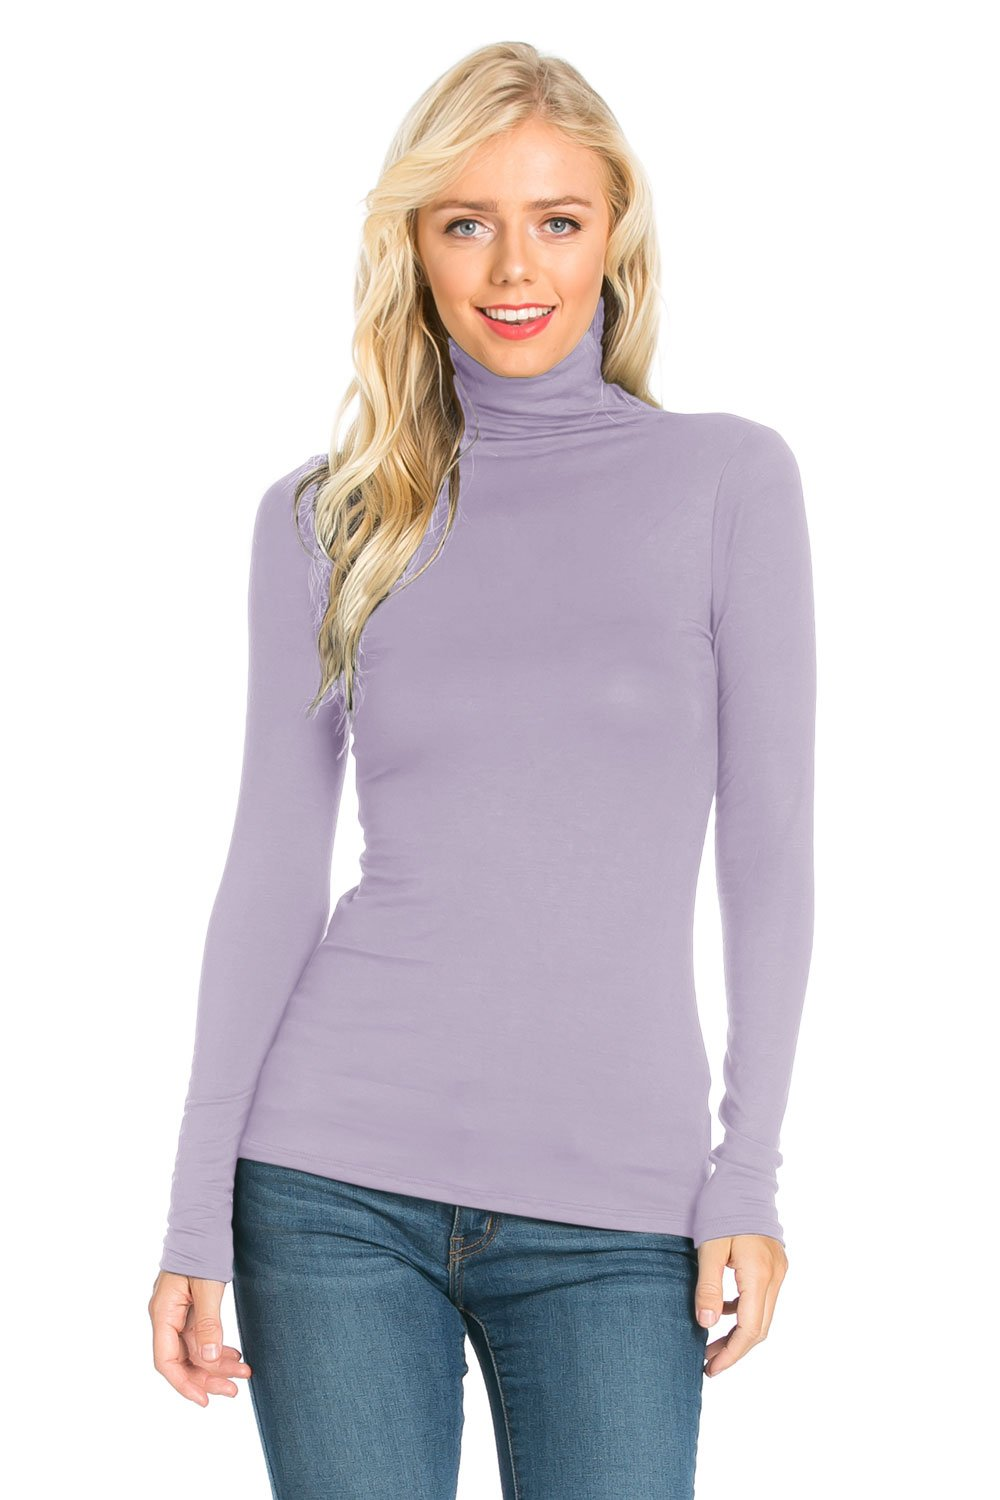 Fashion California Womens Turtleneck Slim Fit Pullover Jersey Thin Sweater T-Shirt Top (XX-Large, Lavender)